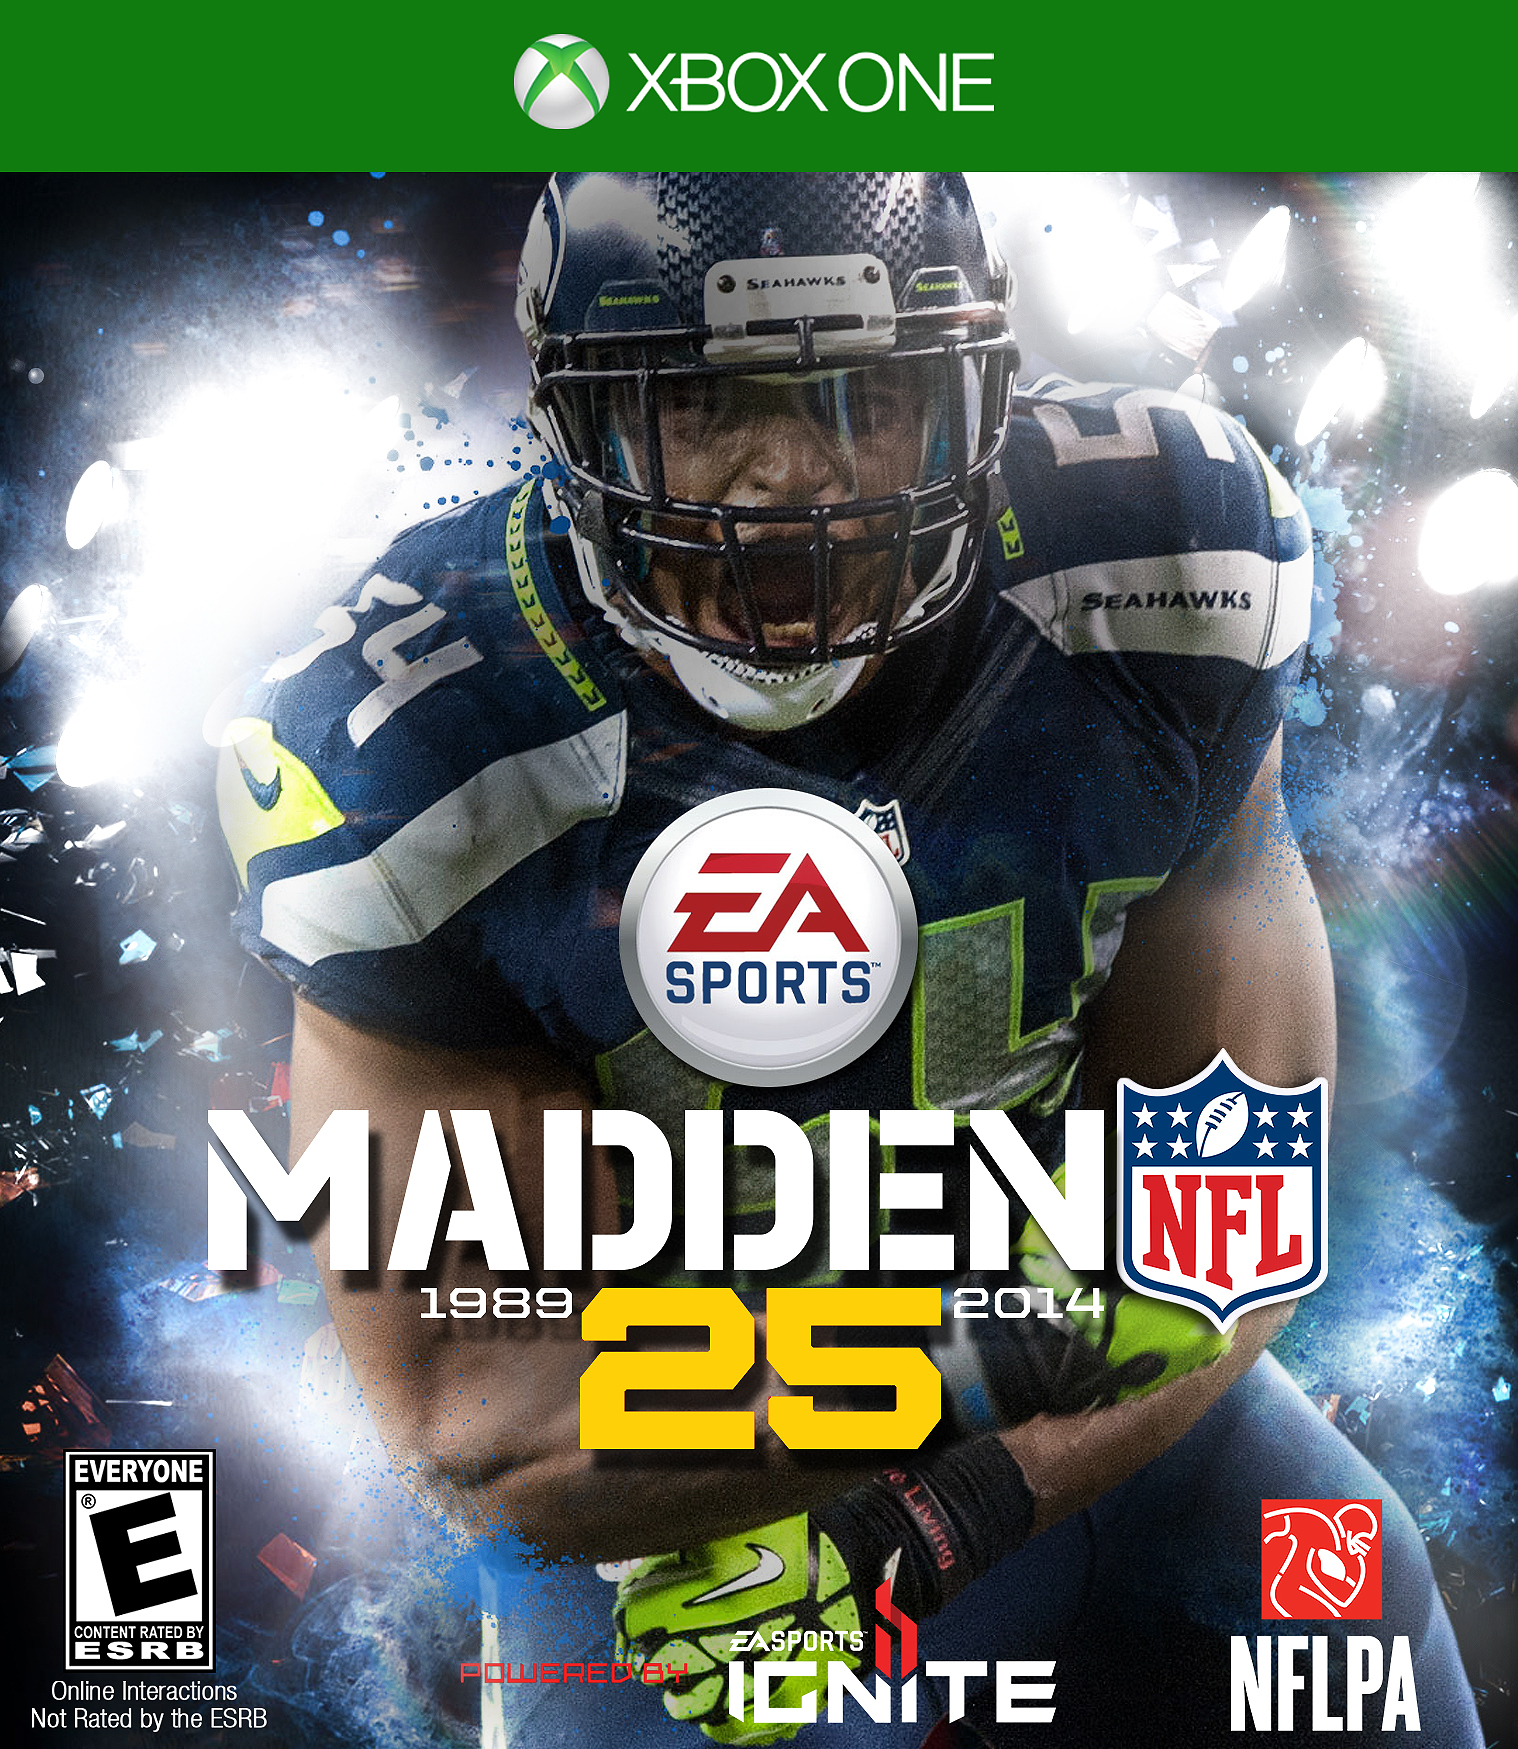 Bobby Wagner Madden 25 Xbox e Cover by Stealthy4u on DeviantArt